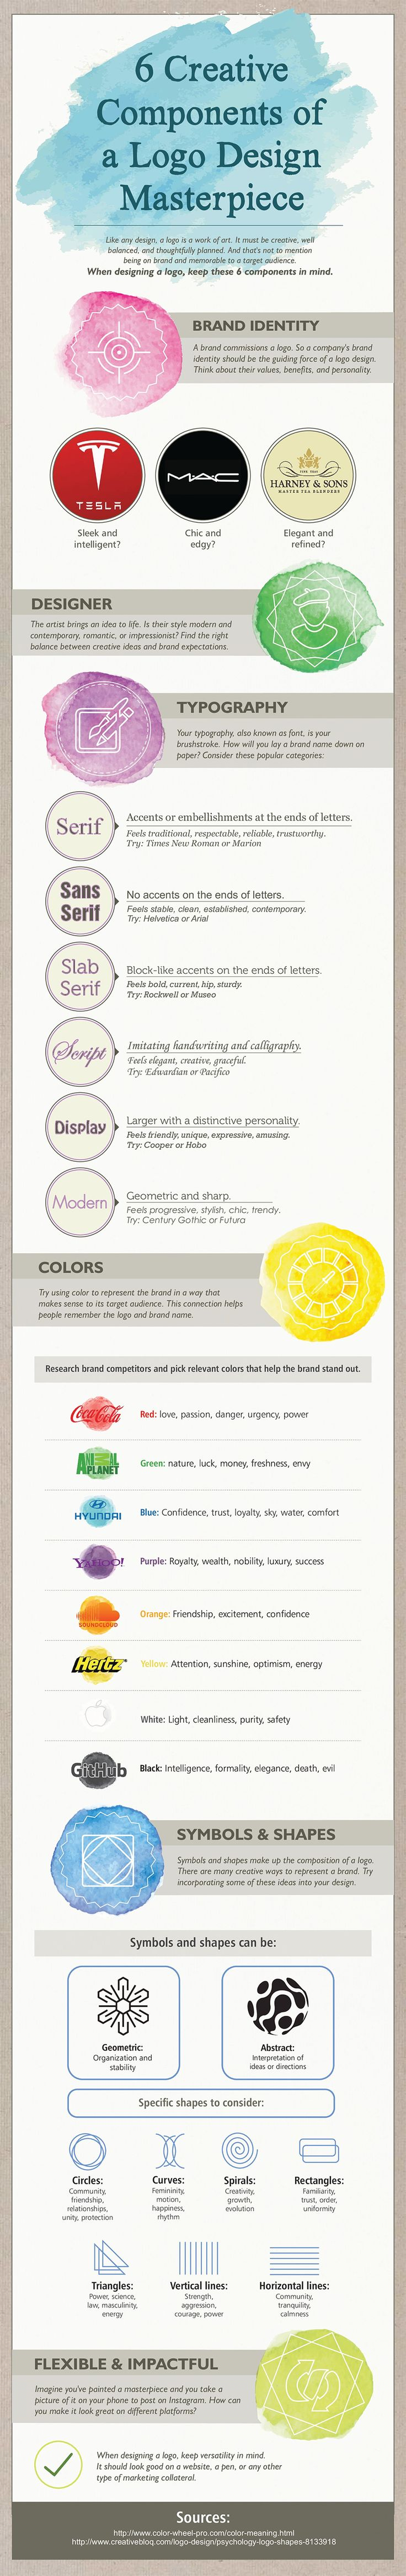 6 Creative Components of a #LogoDesign Masterpiece #Infographic #Branding